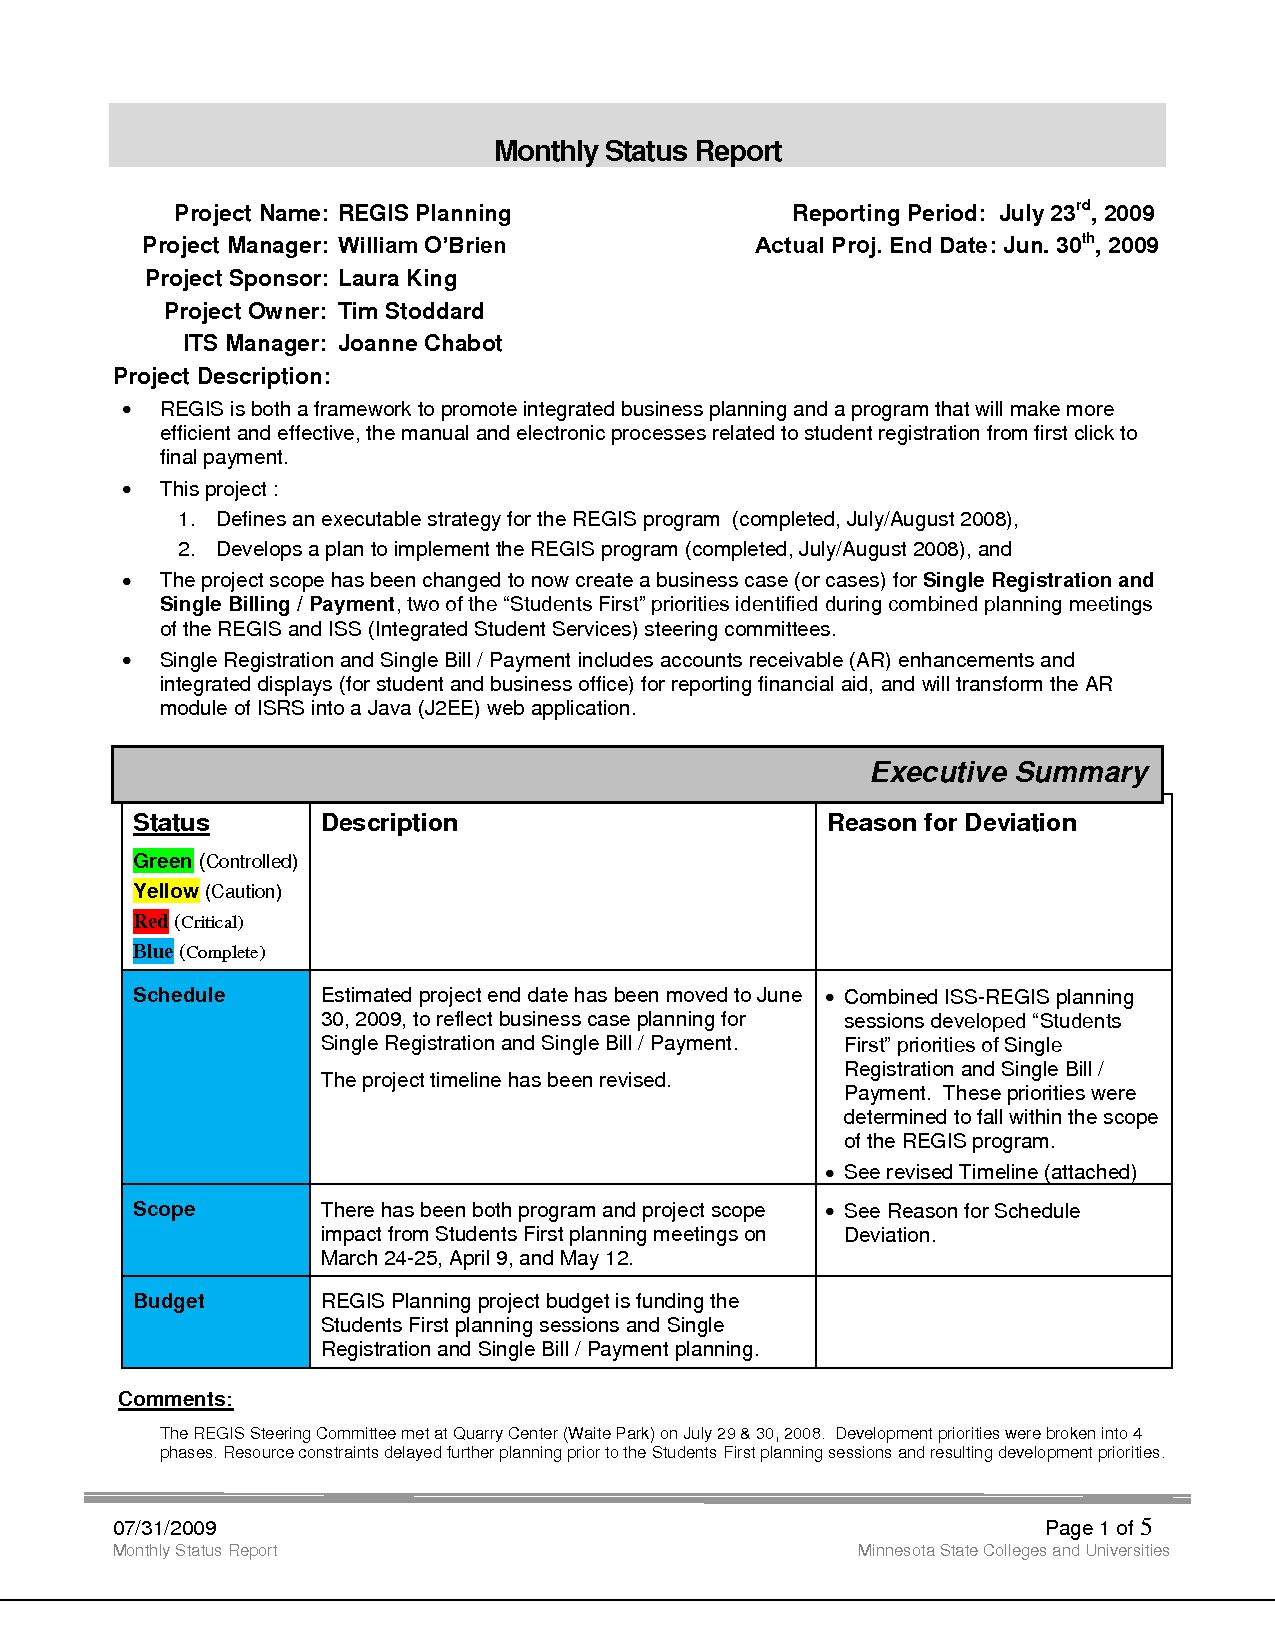 The Glamorous Research Project Report Template Atlantaauctionco